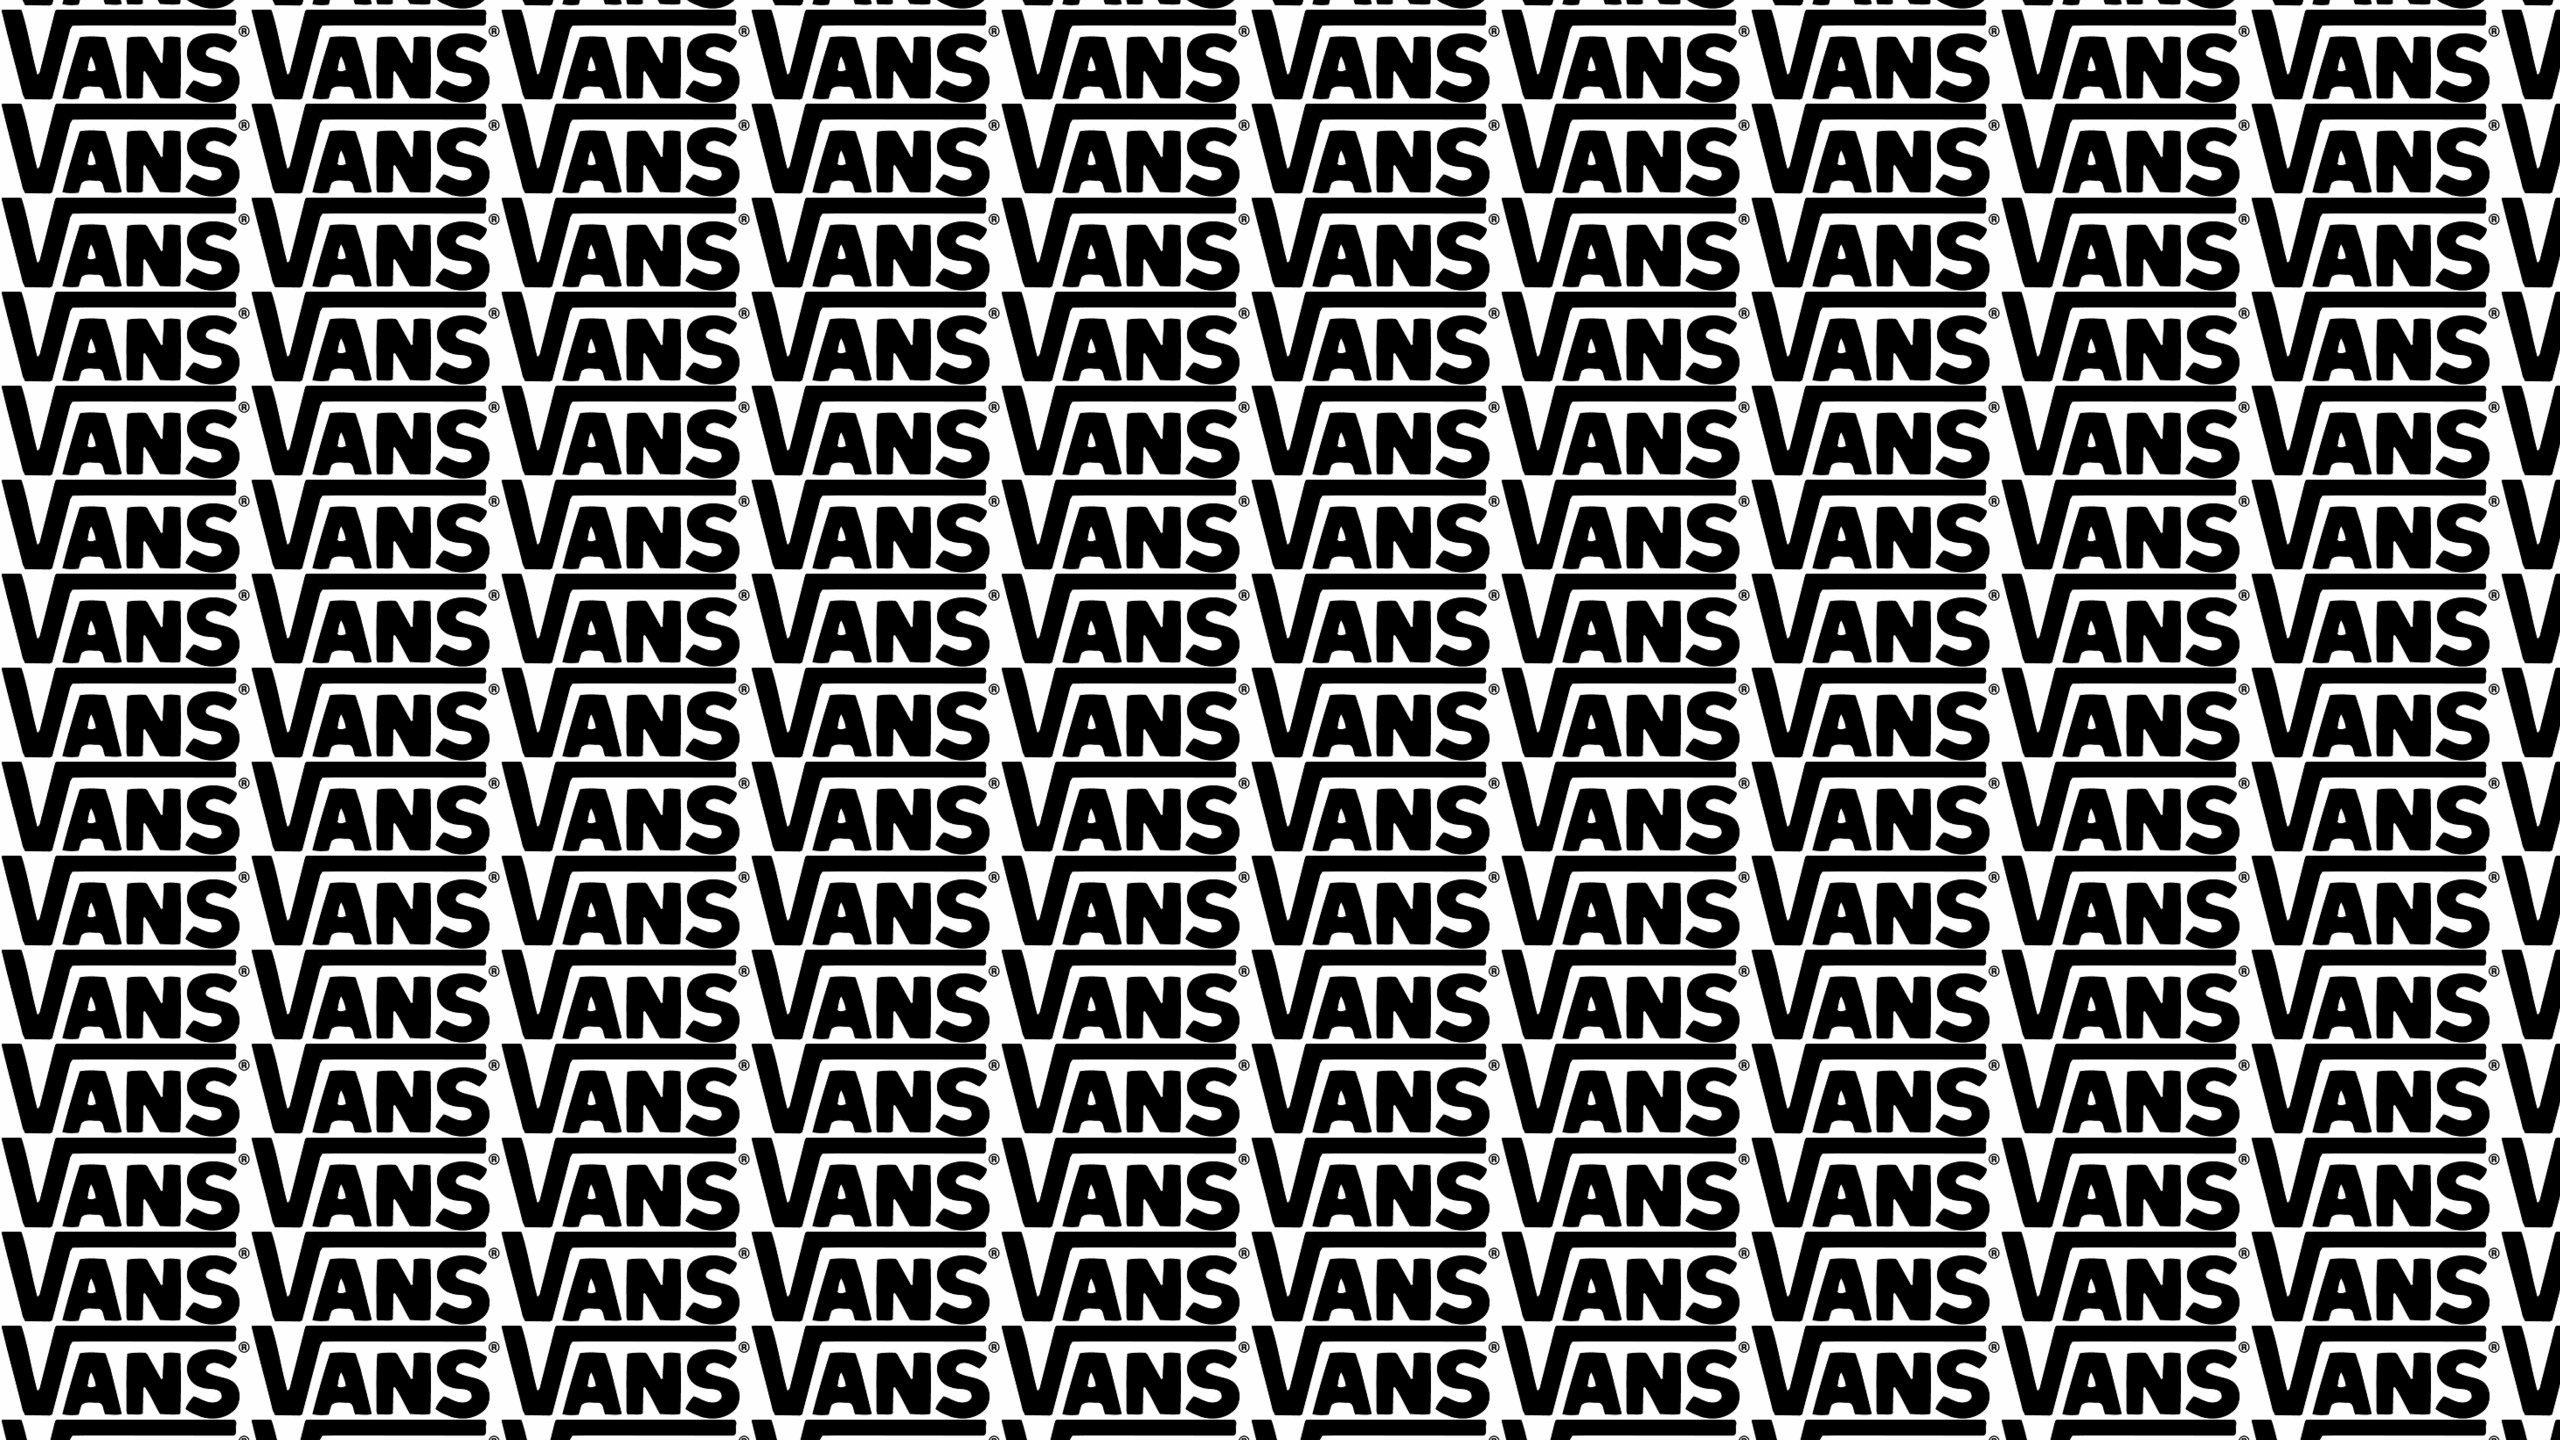 Vans iphone wallpaper tumblr - Vans Background Iphone Vans Desktop Wallpaper